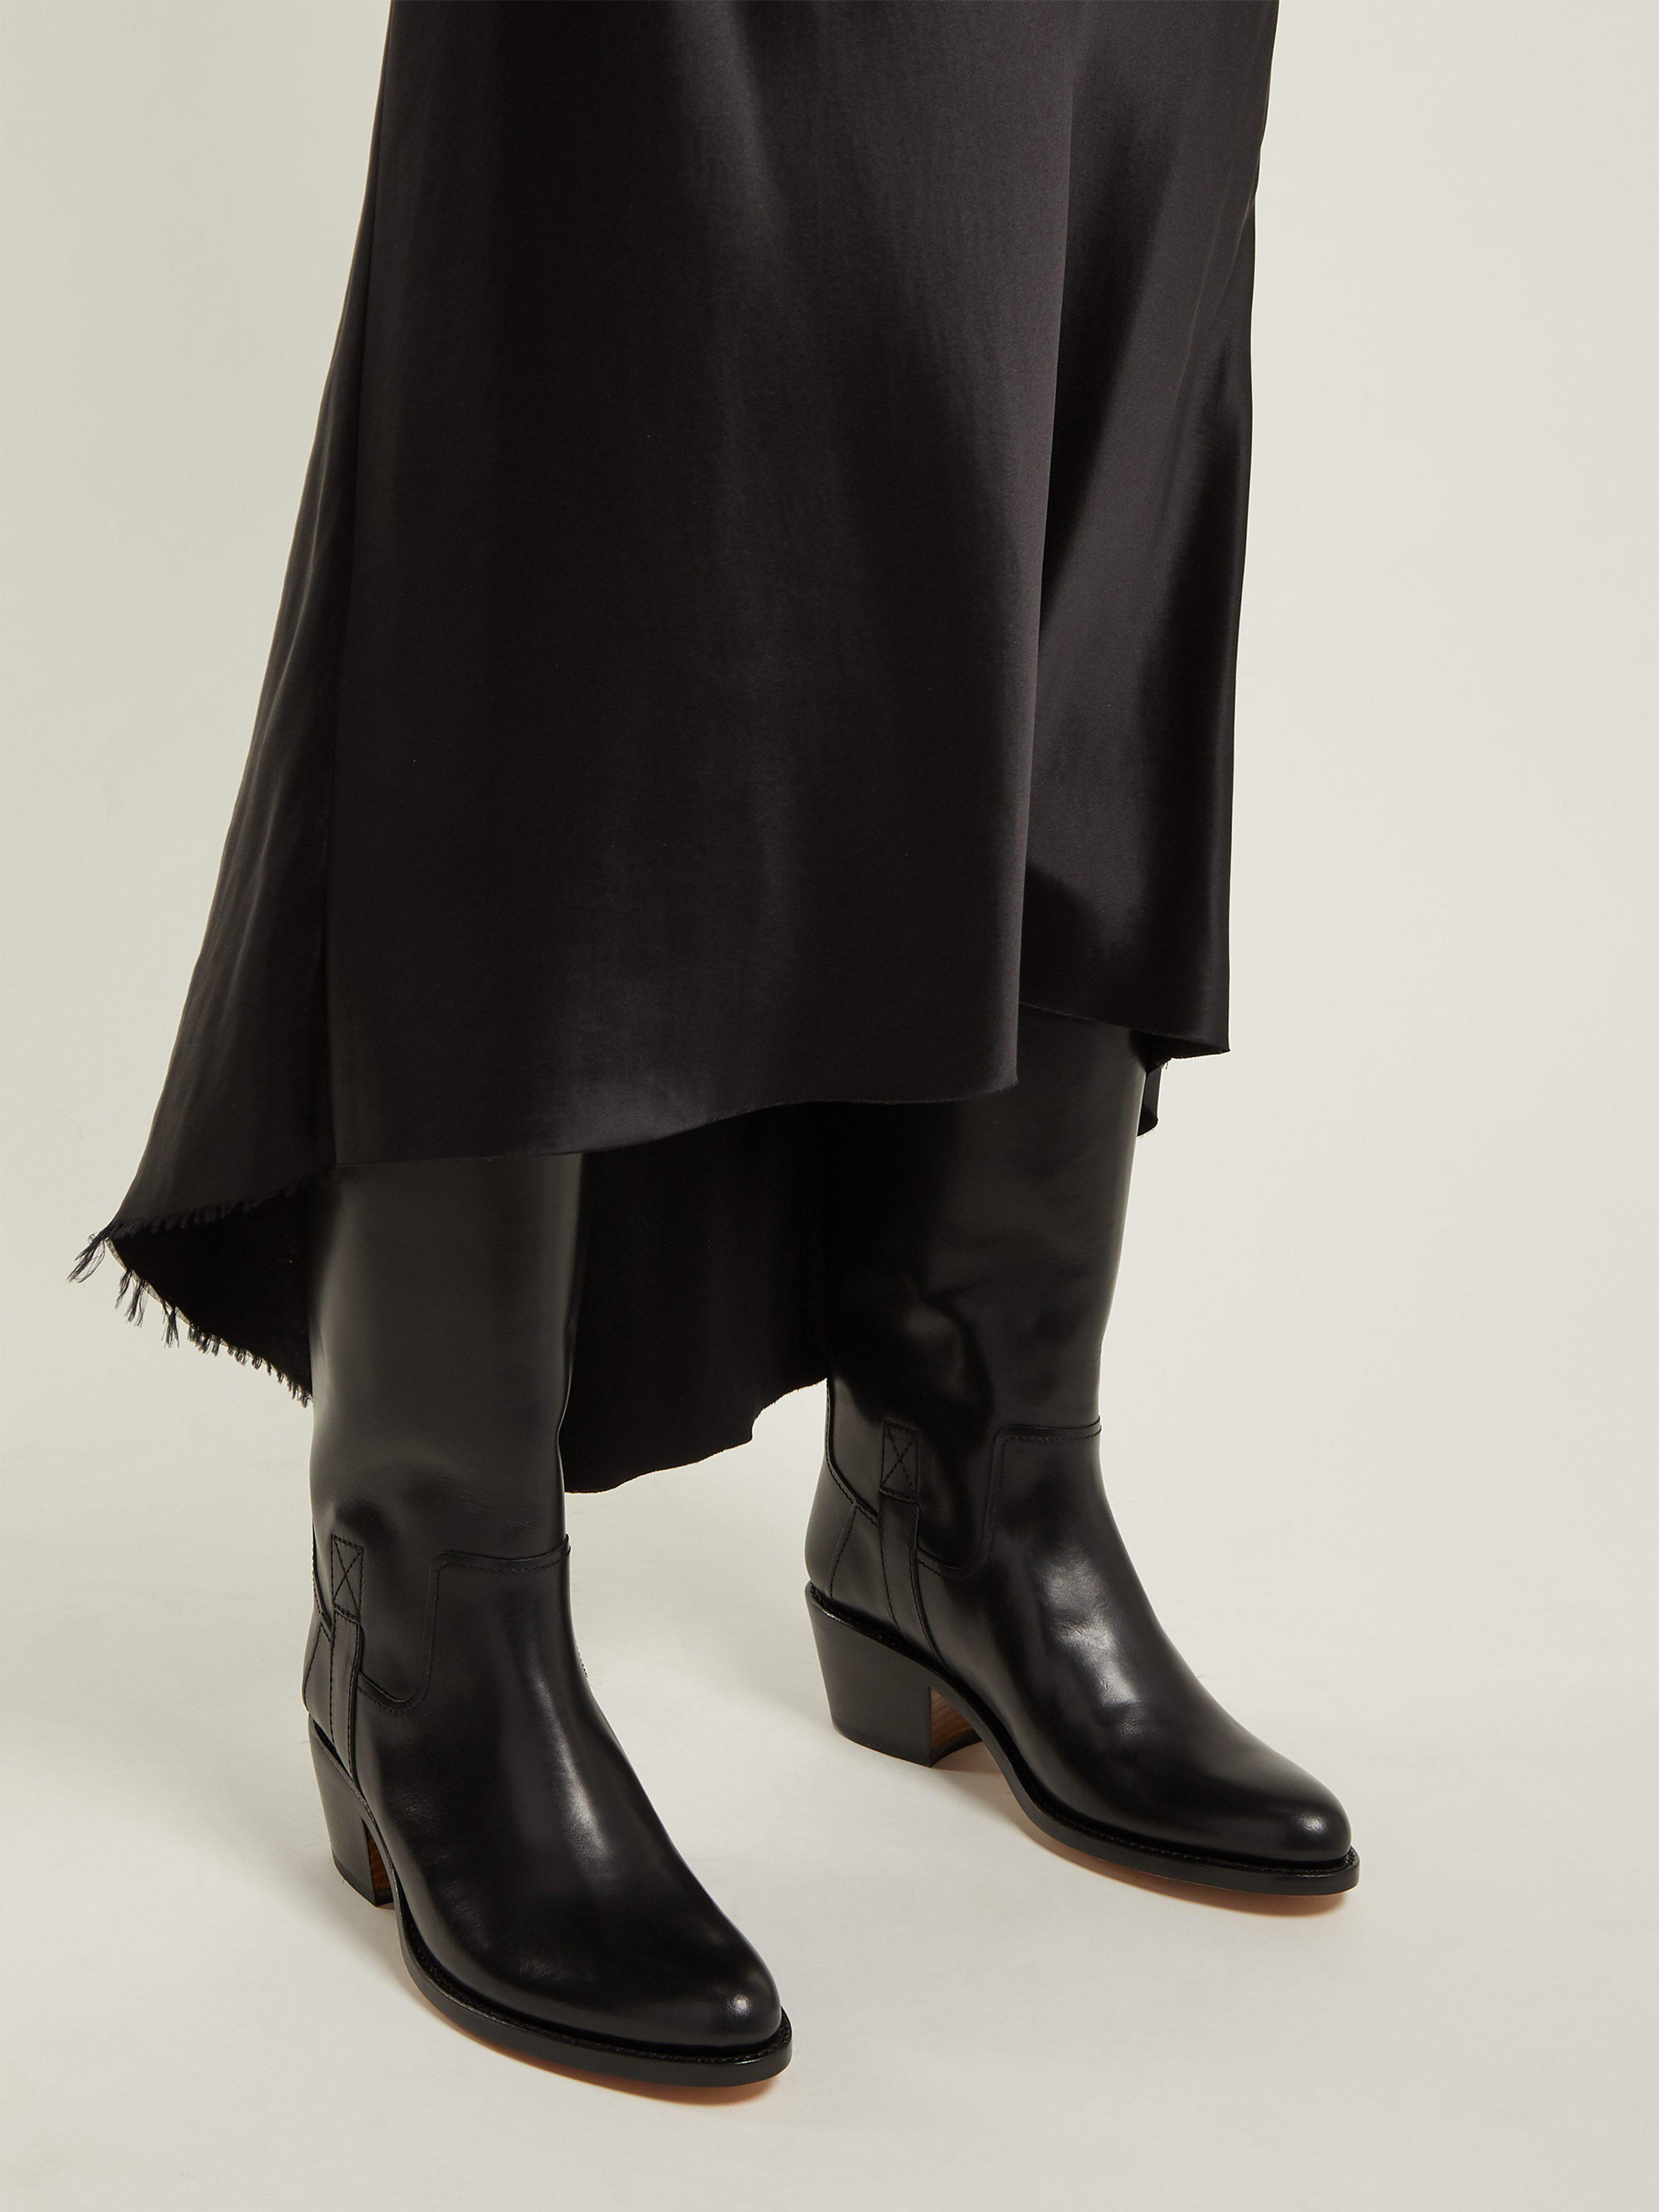 A.P.C. Nina Western Leather Boots in Black - Lyst 1b7f821dfef9